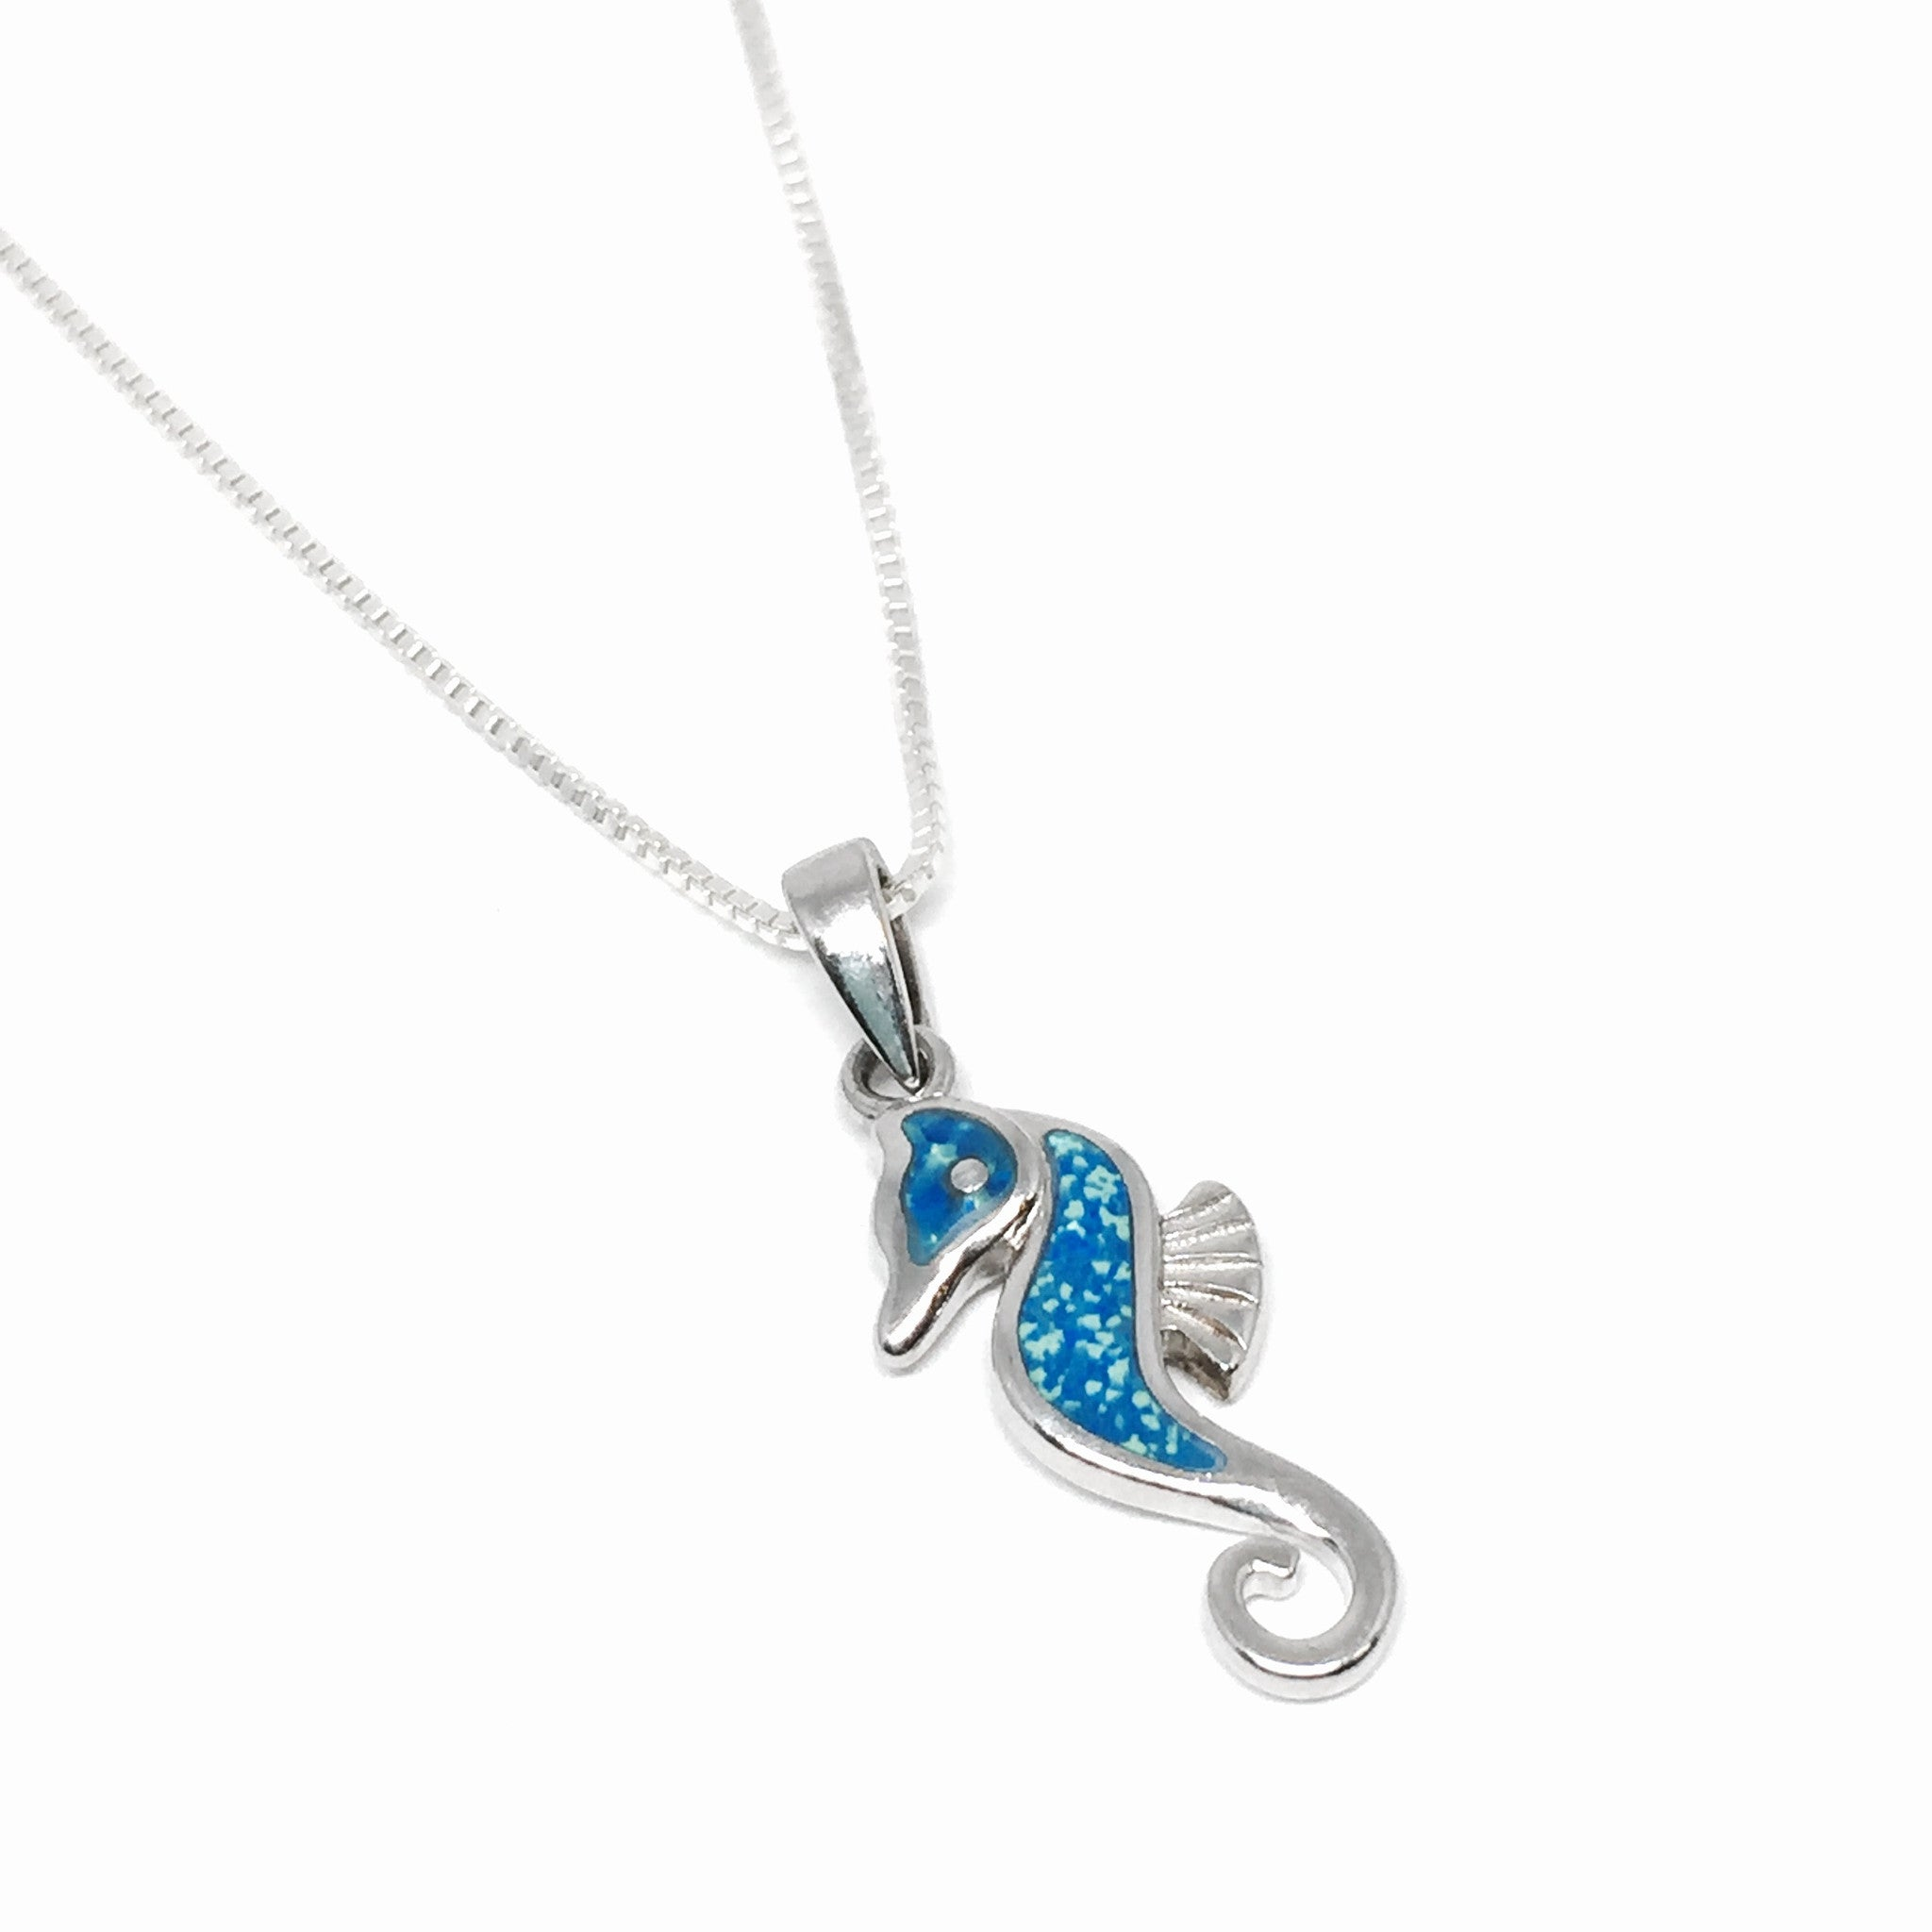 pendants by jewelry secrets pendant sea glass necklace seahorse